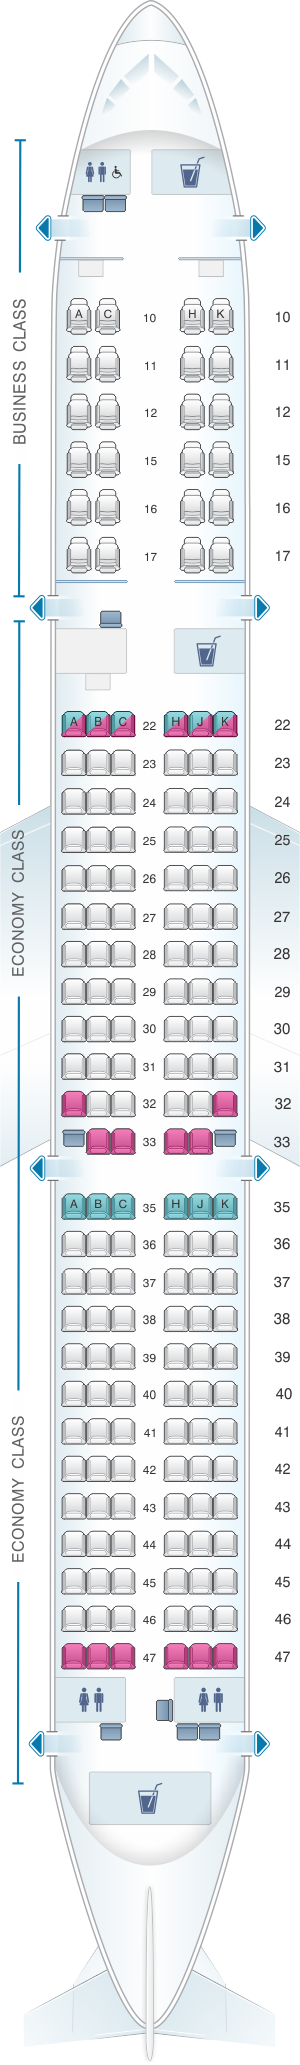 Seat map for Cathay Dragon Airbus A321 200